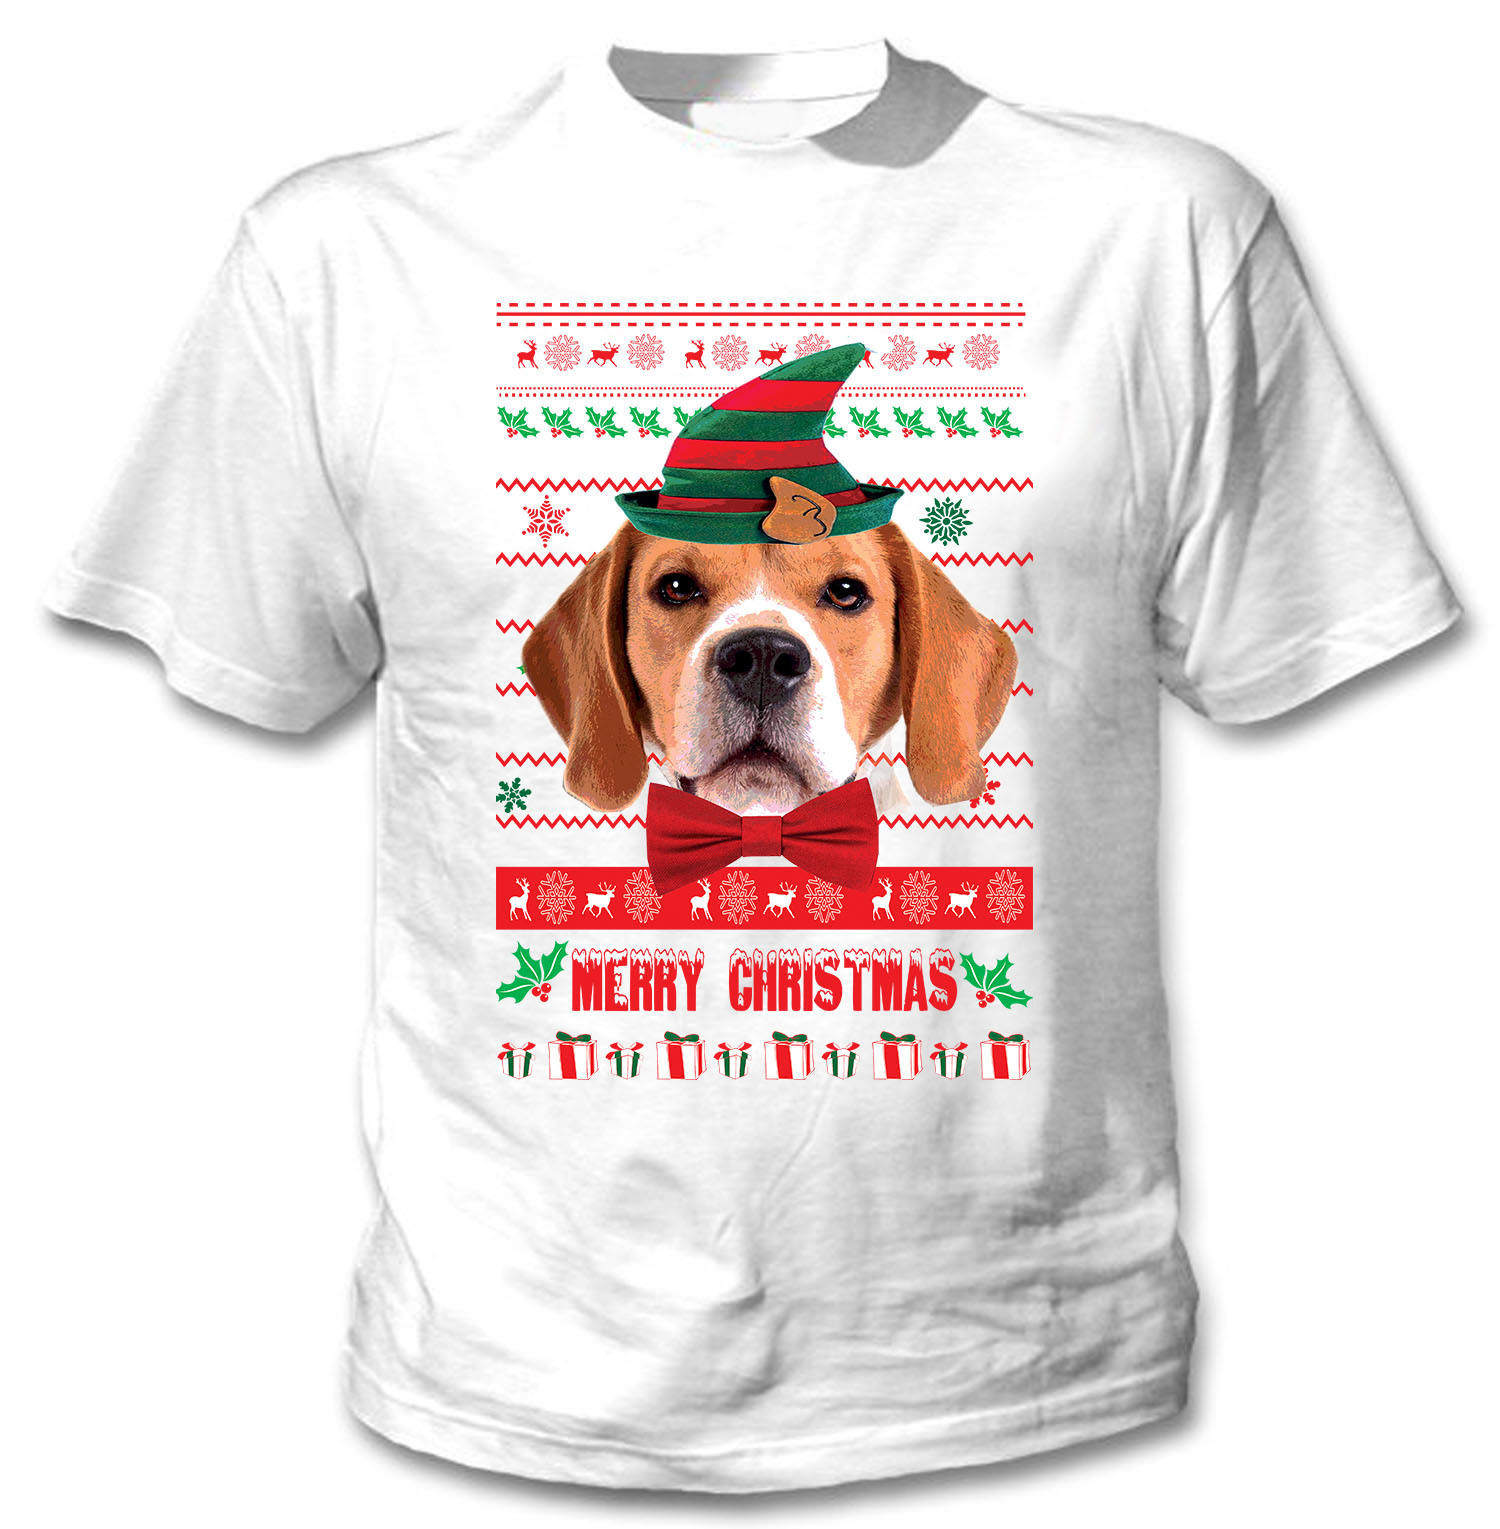 CHRISTMAS BEAGLE - NEW COTTON WHITE TSHIRT